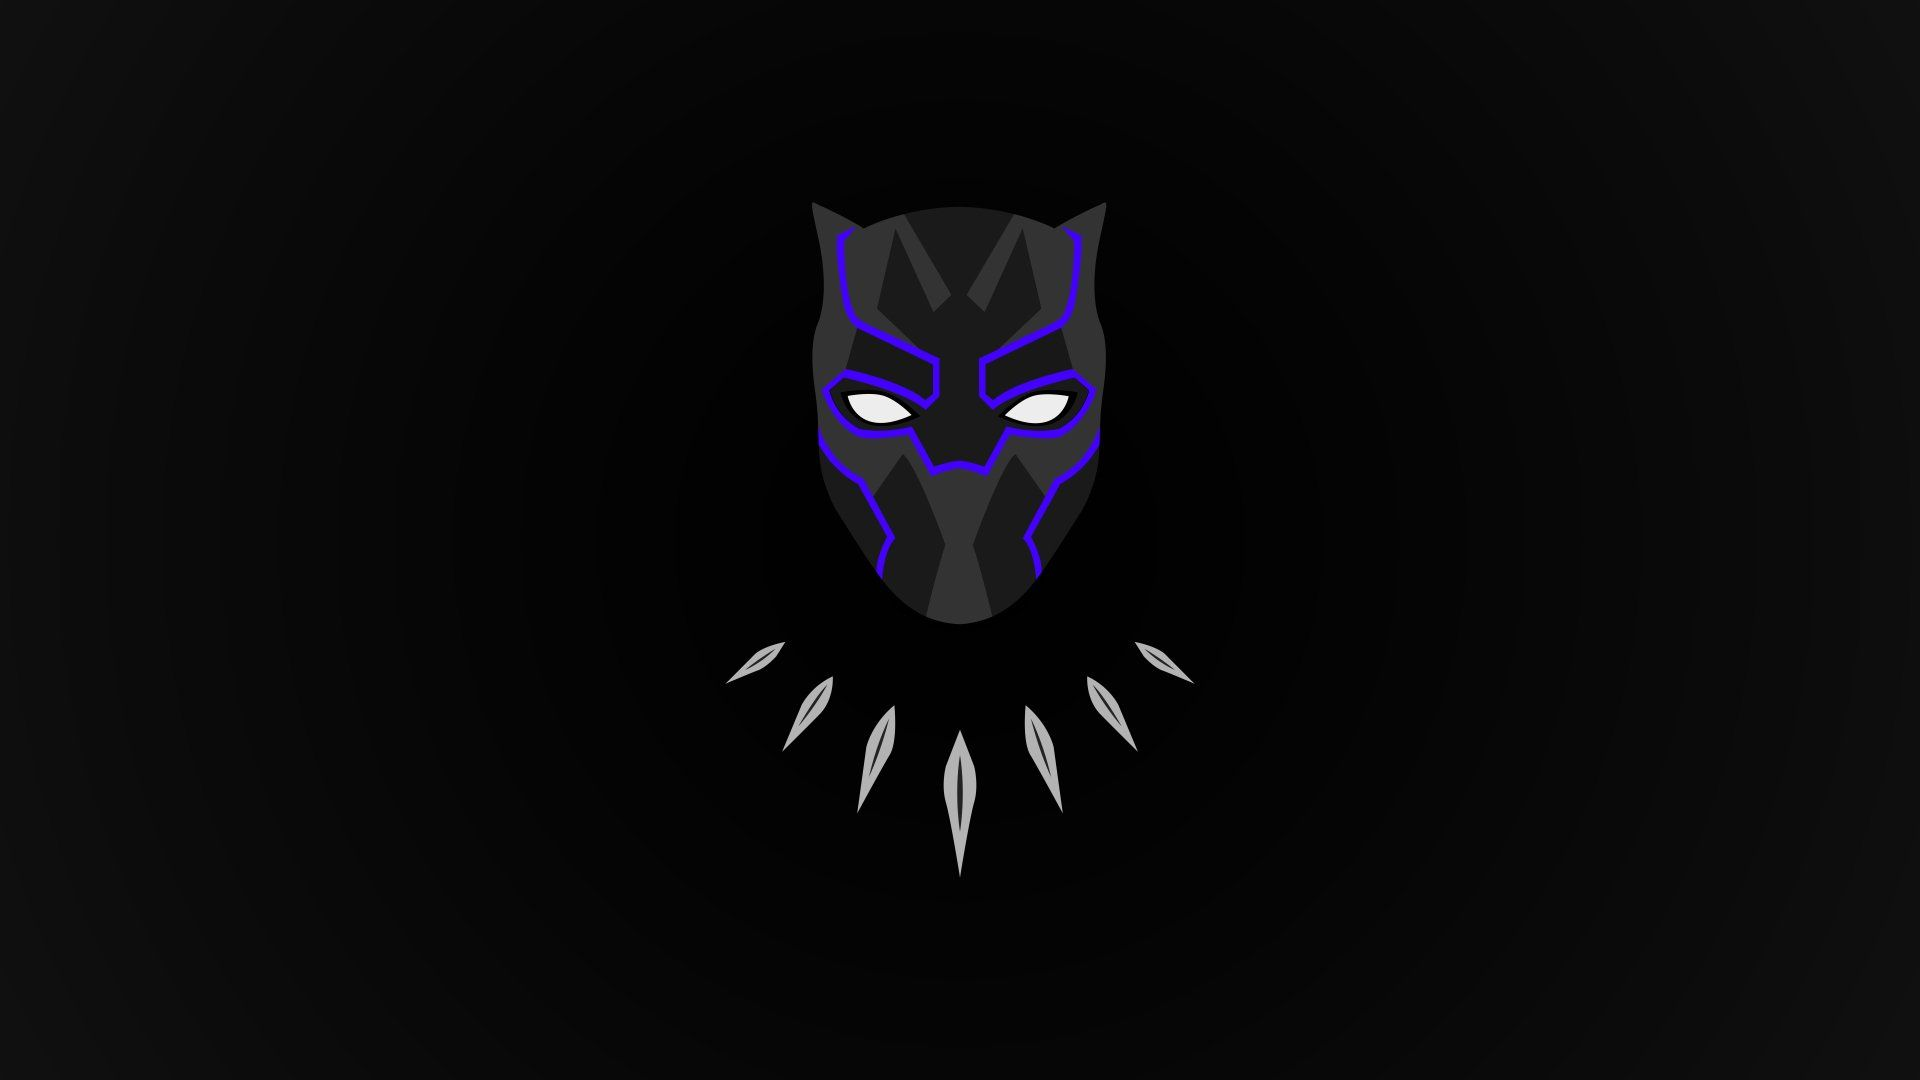 Black Panther Logo Wallpapers Top Free Black Panther Logo Backgrounds Wallpaperaccess